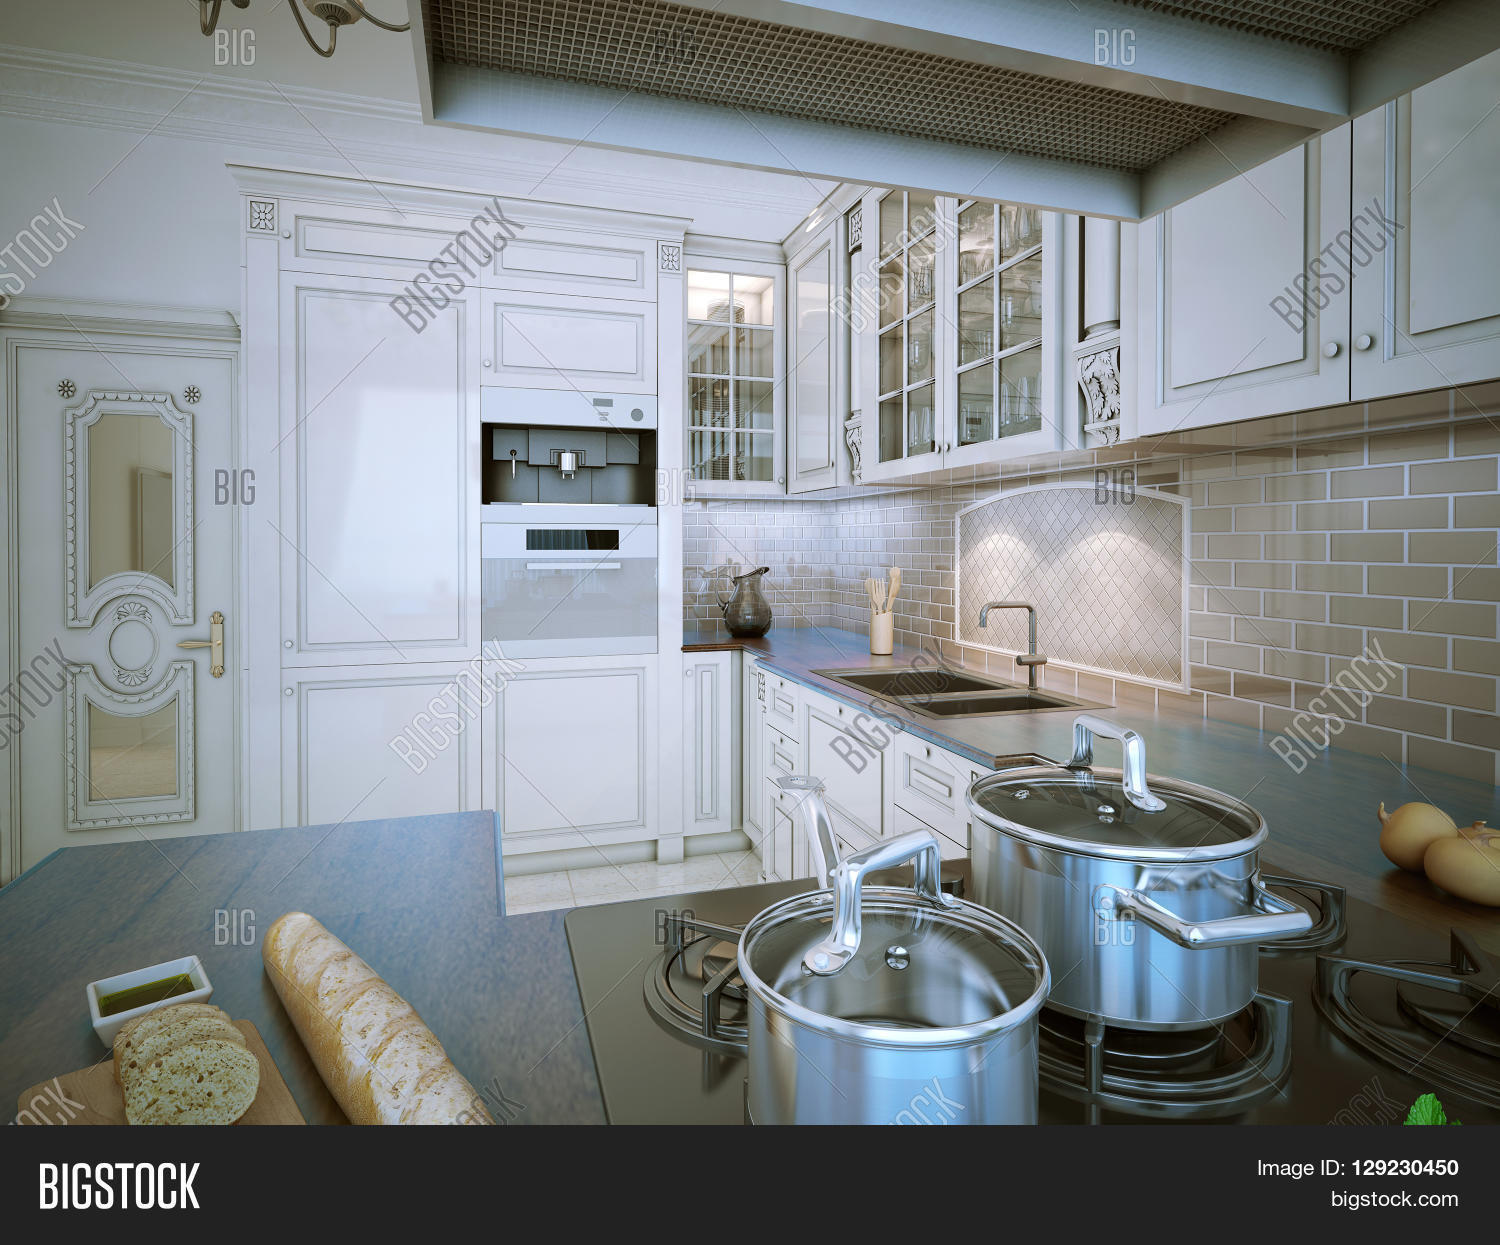 - Kitchen Provence Style Image & Photo (Free Trial) Bigstock